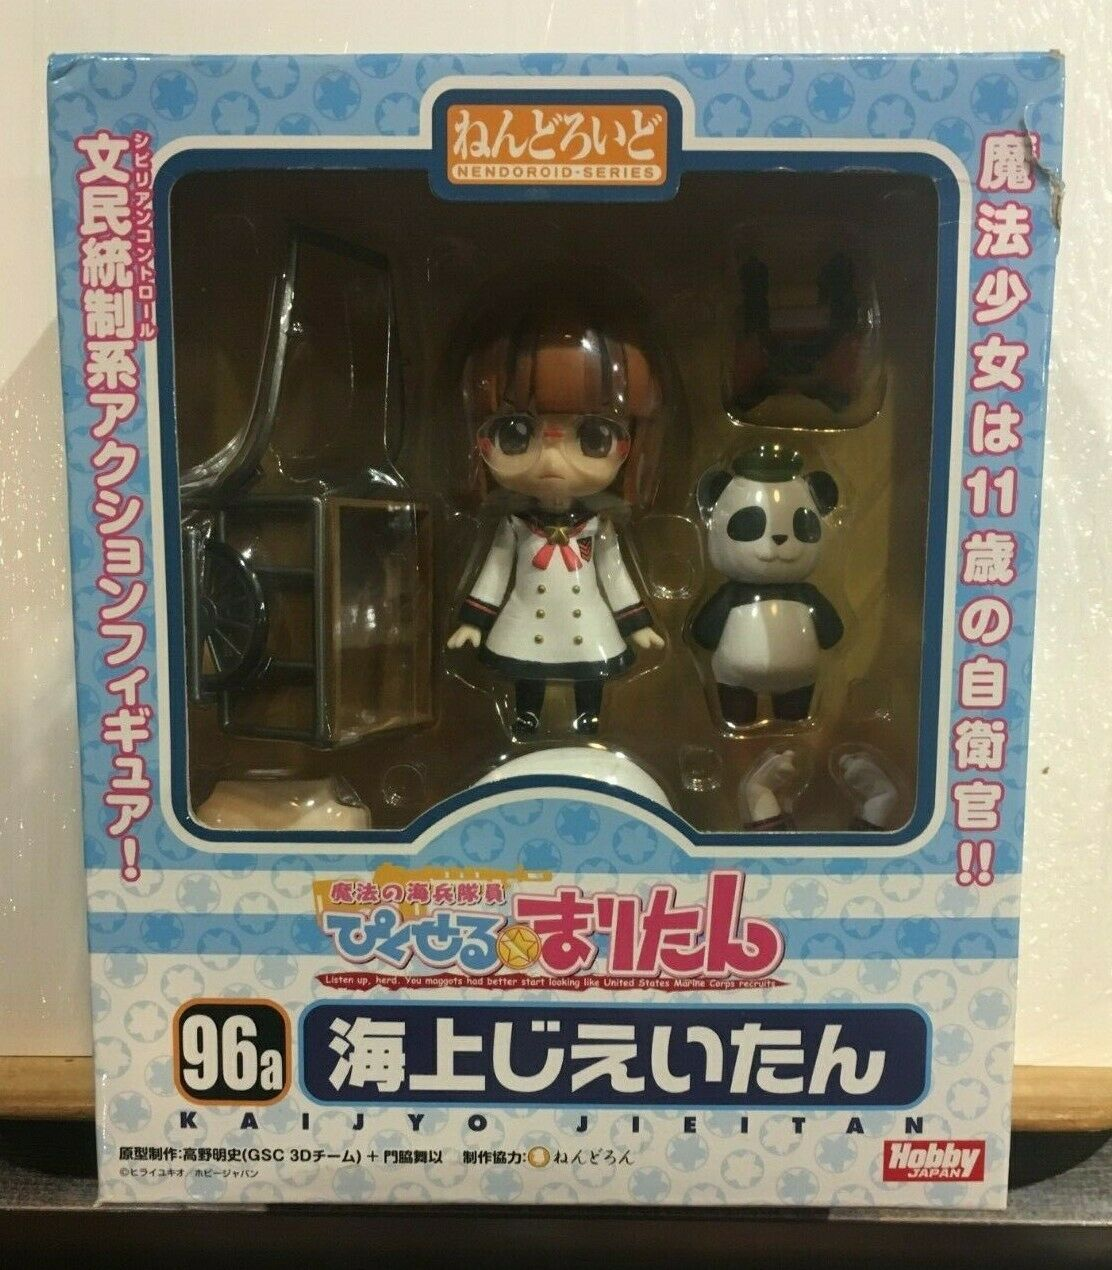 Nendoroid 96a Kaijyo Jieitan Magical marine pixel Good Smile Company JAPAN